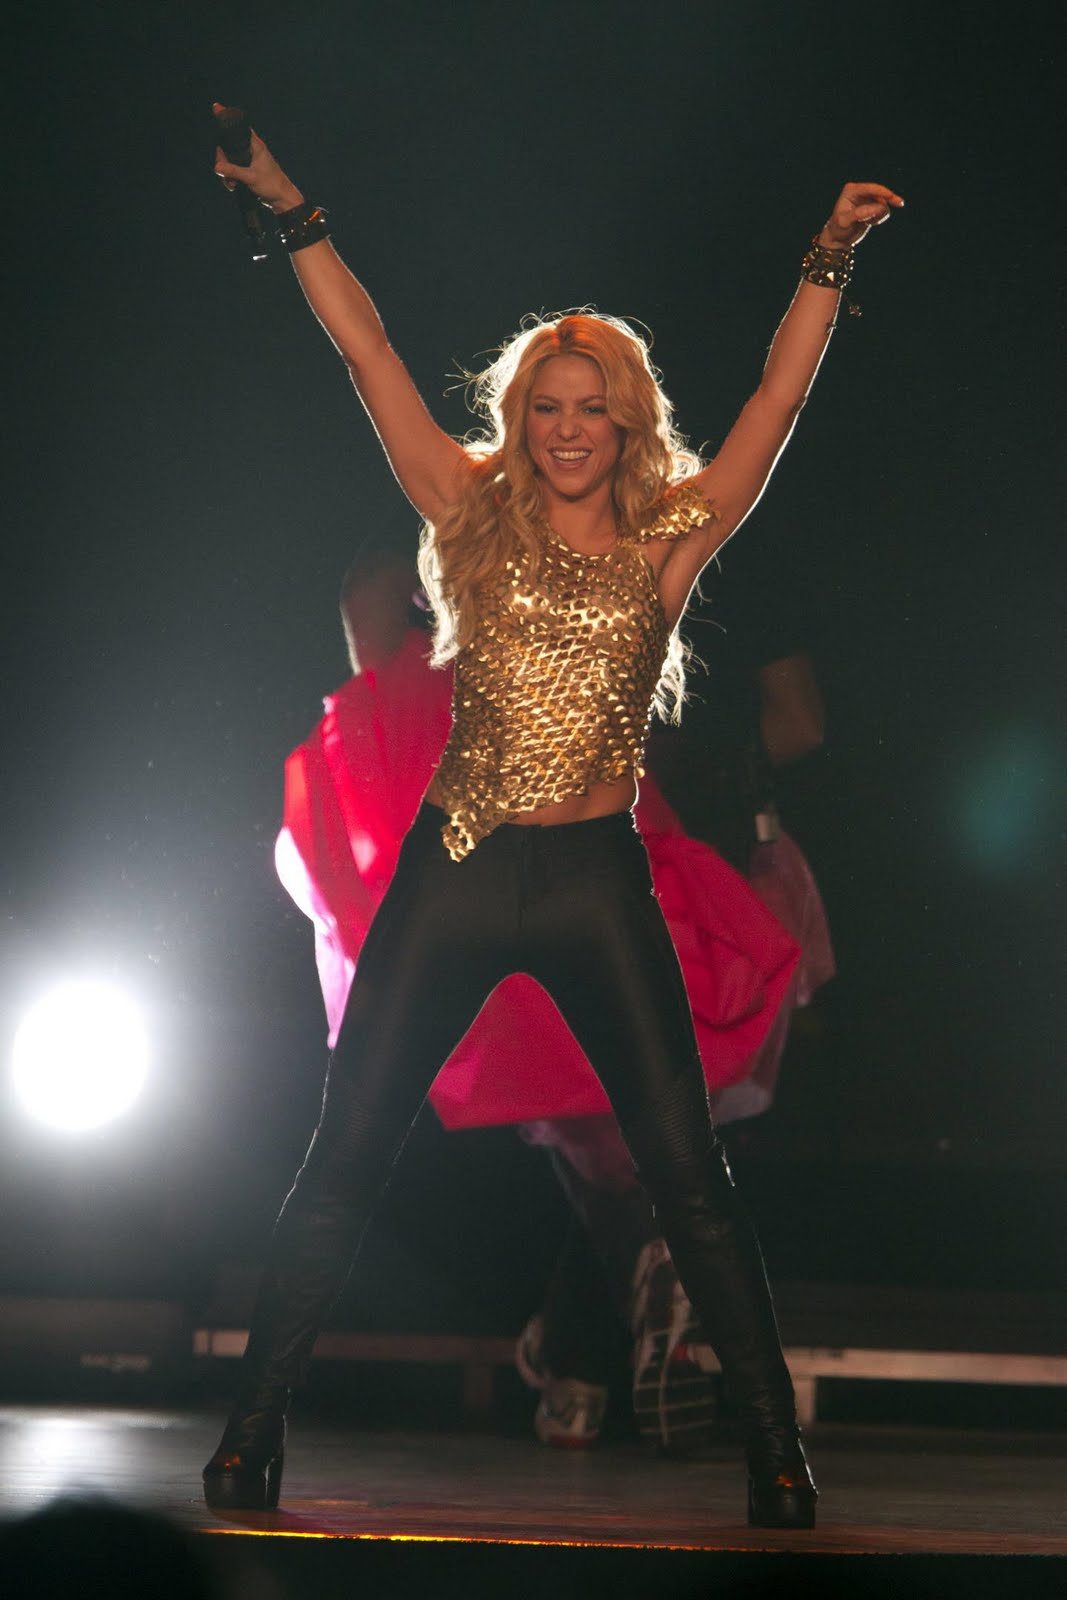 Alexis Shancez Blog Shakira Live Performance At Madison Square Garden Pictures